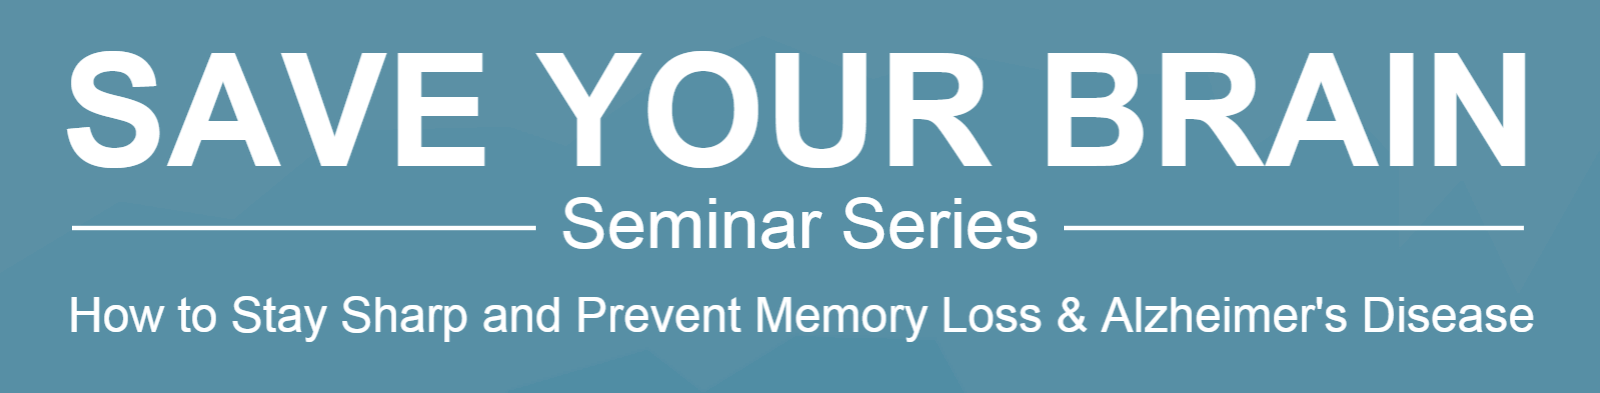 Save Your Brain Seminar Series